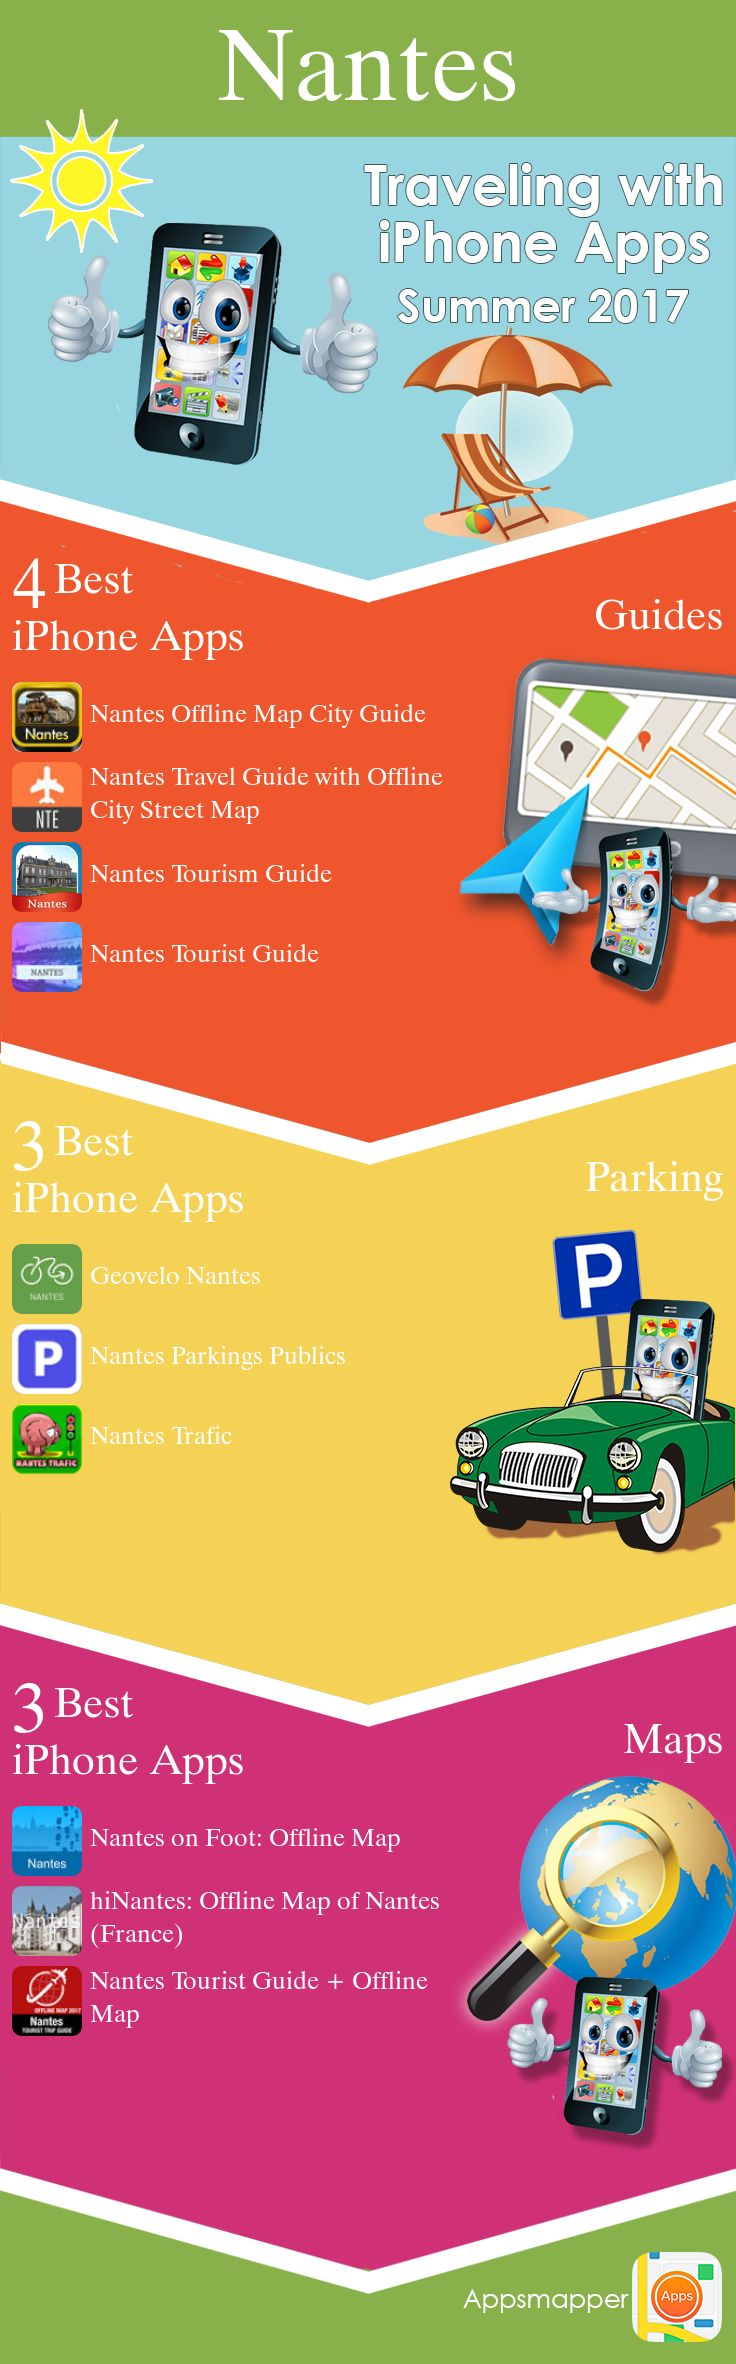 Nantes iPhone apps: Travel Guides, Maps, Transportation, Biking, Museums, Parking, Sport and apps for Students.